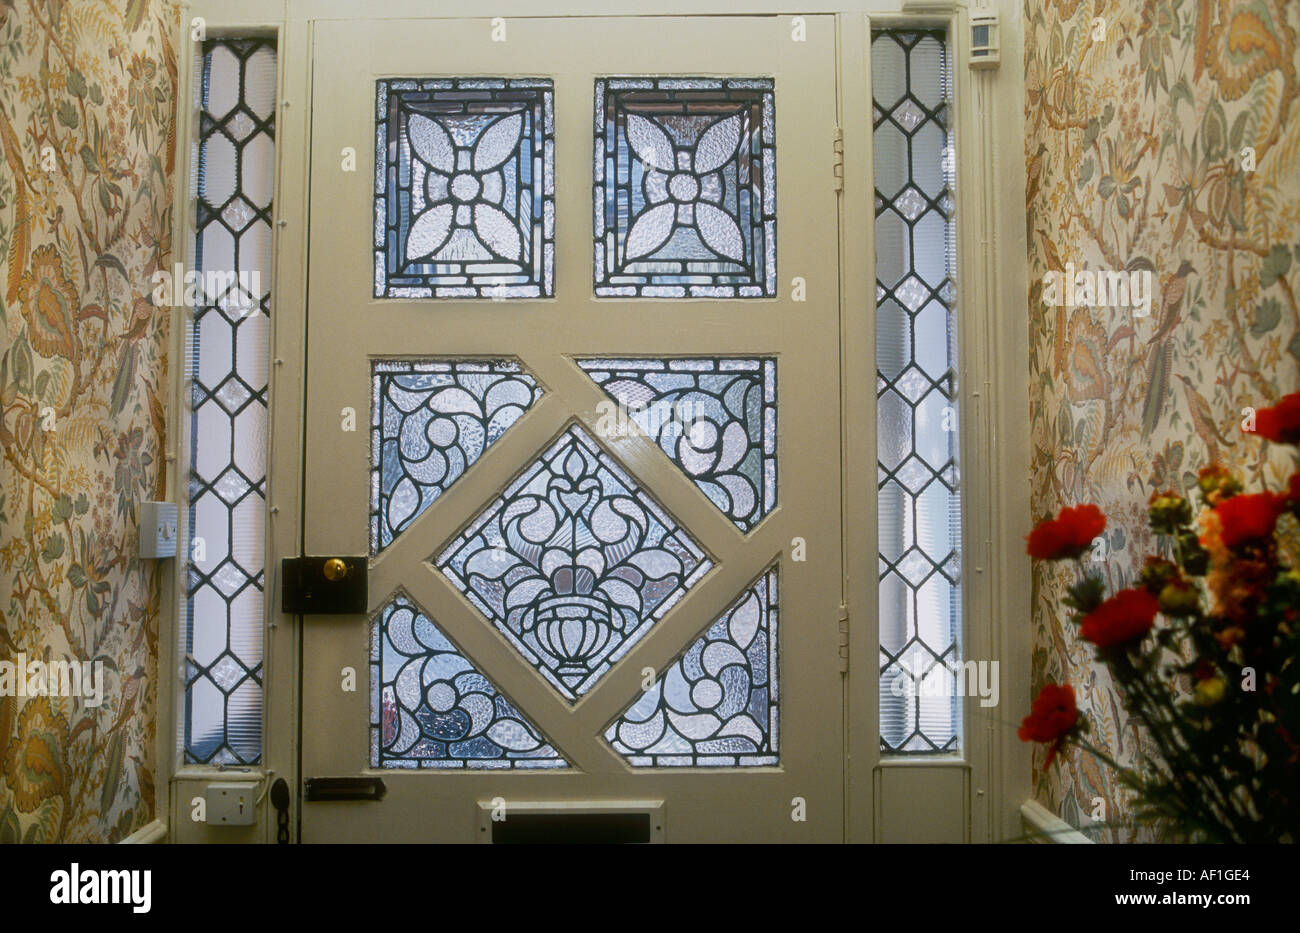 933 #654022 Stock Photo Decorative Edwardian Stained Glass Front Door Taken From  wallpaper Stained Glass Front Doors 40151300